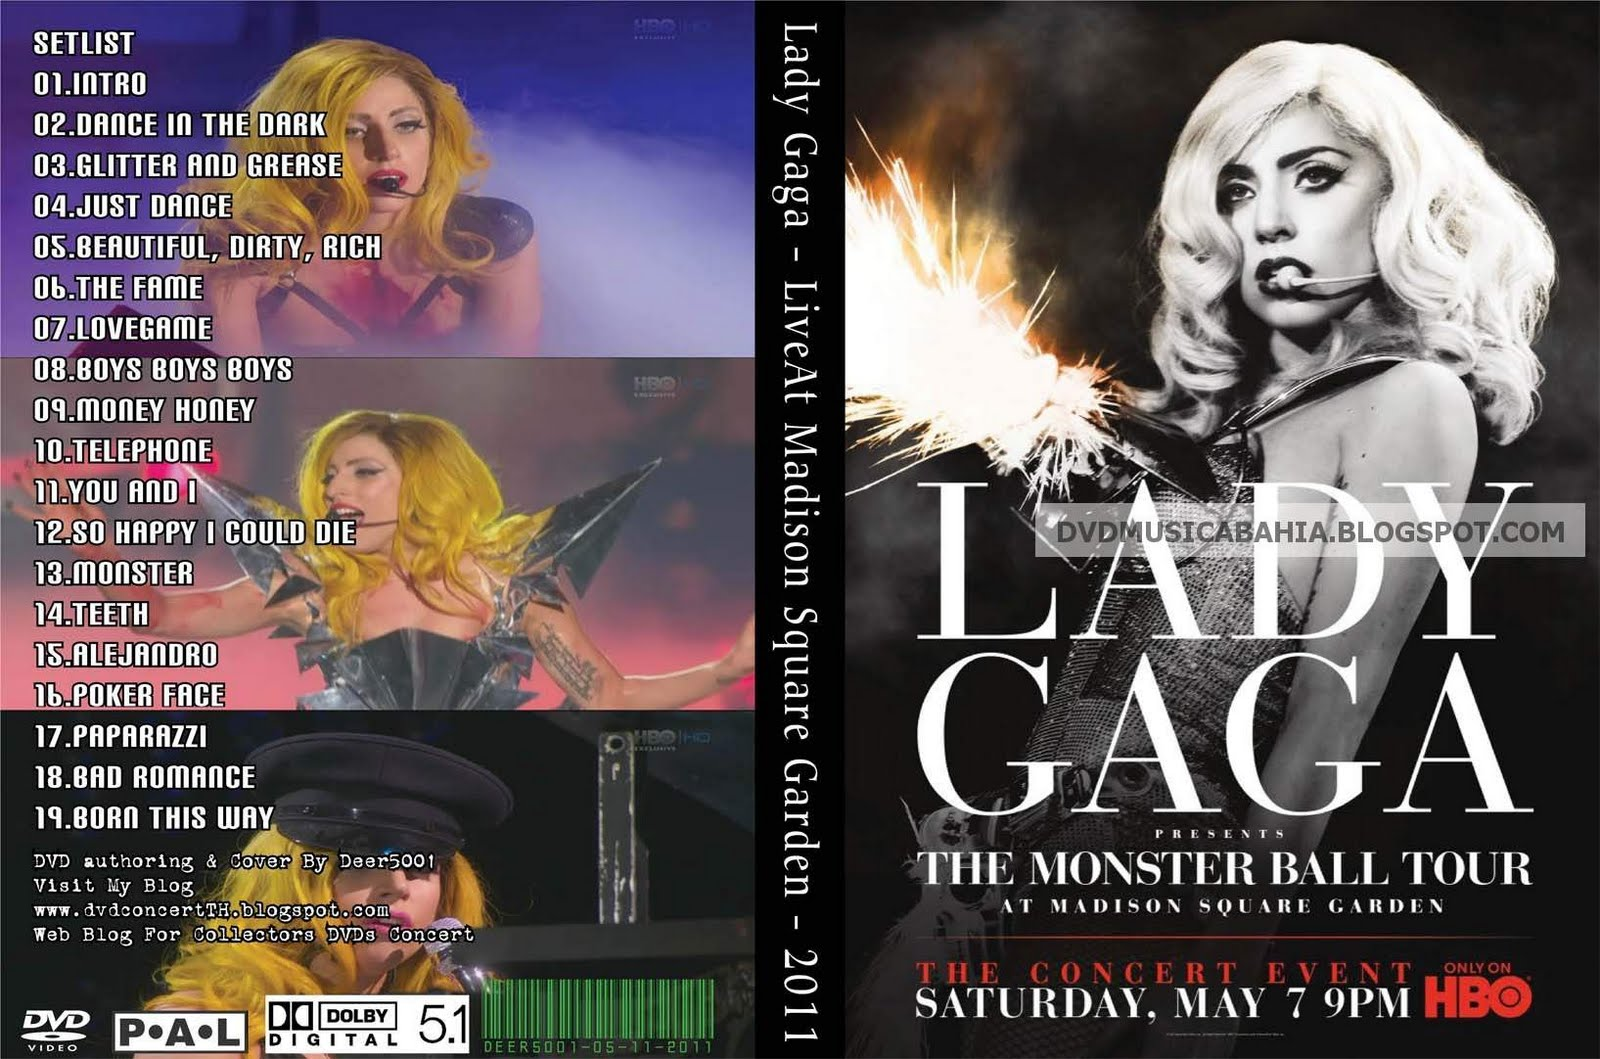 http://1.bp.blogspot.com/-AxdGXszbzfc/ThofXhJqTpI/AAAAAAAABsc/LxqyoNL45Sc/s1600/Lady+Gaga+-+Live+at+The+Monster+Ball+Tour+-+2011.jpg